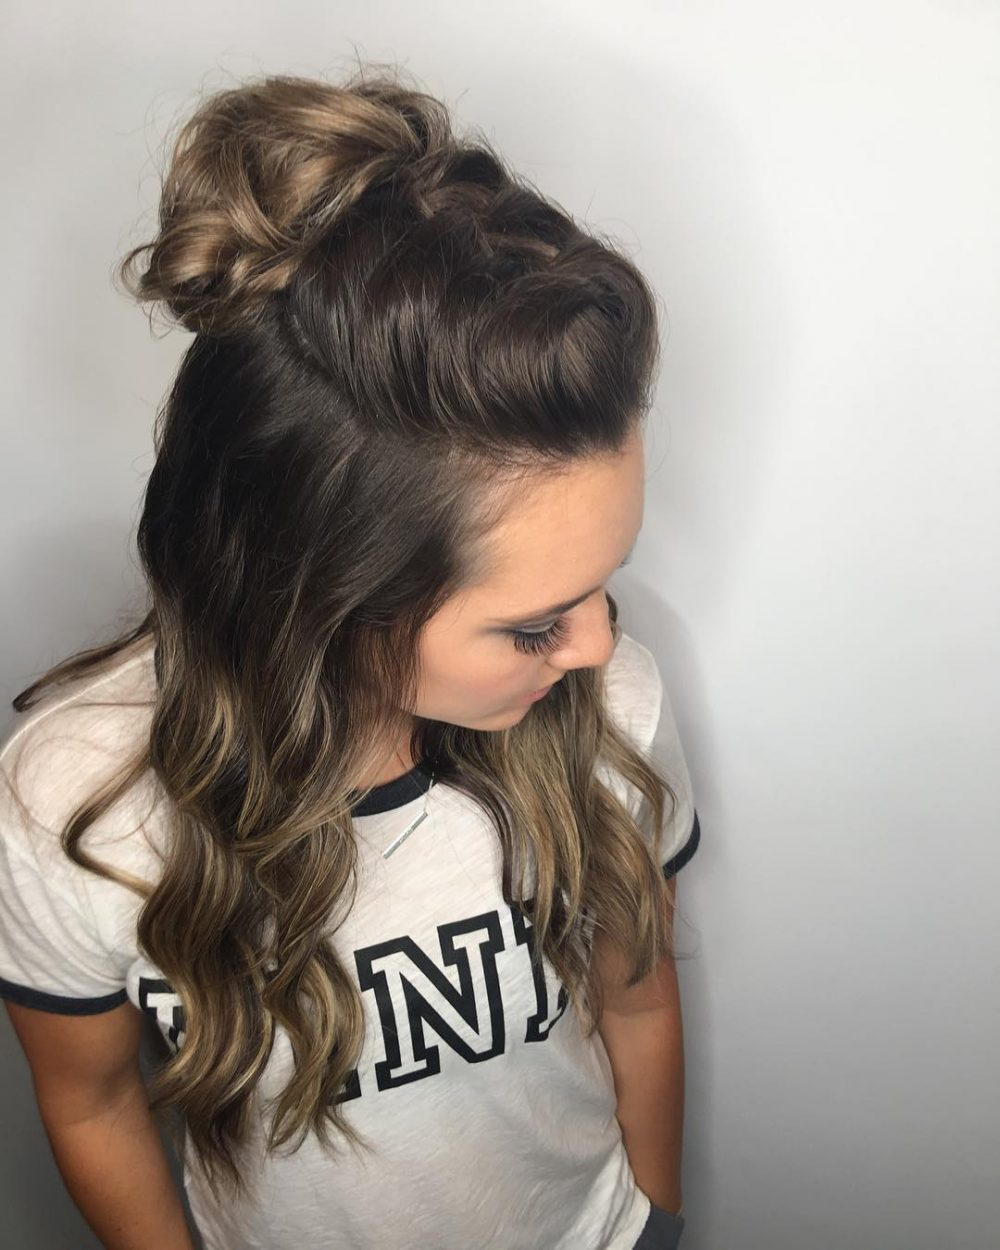 Casual With a Touch of Elegance hairstyle